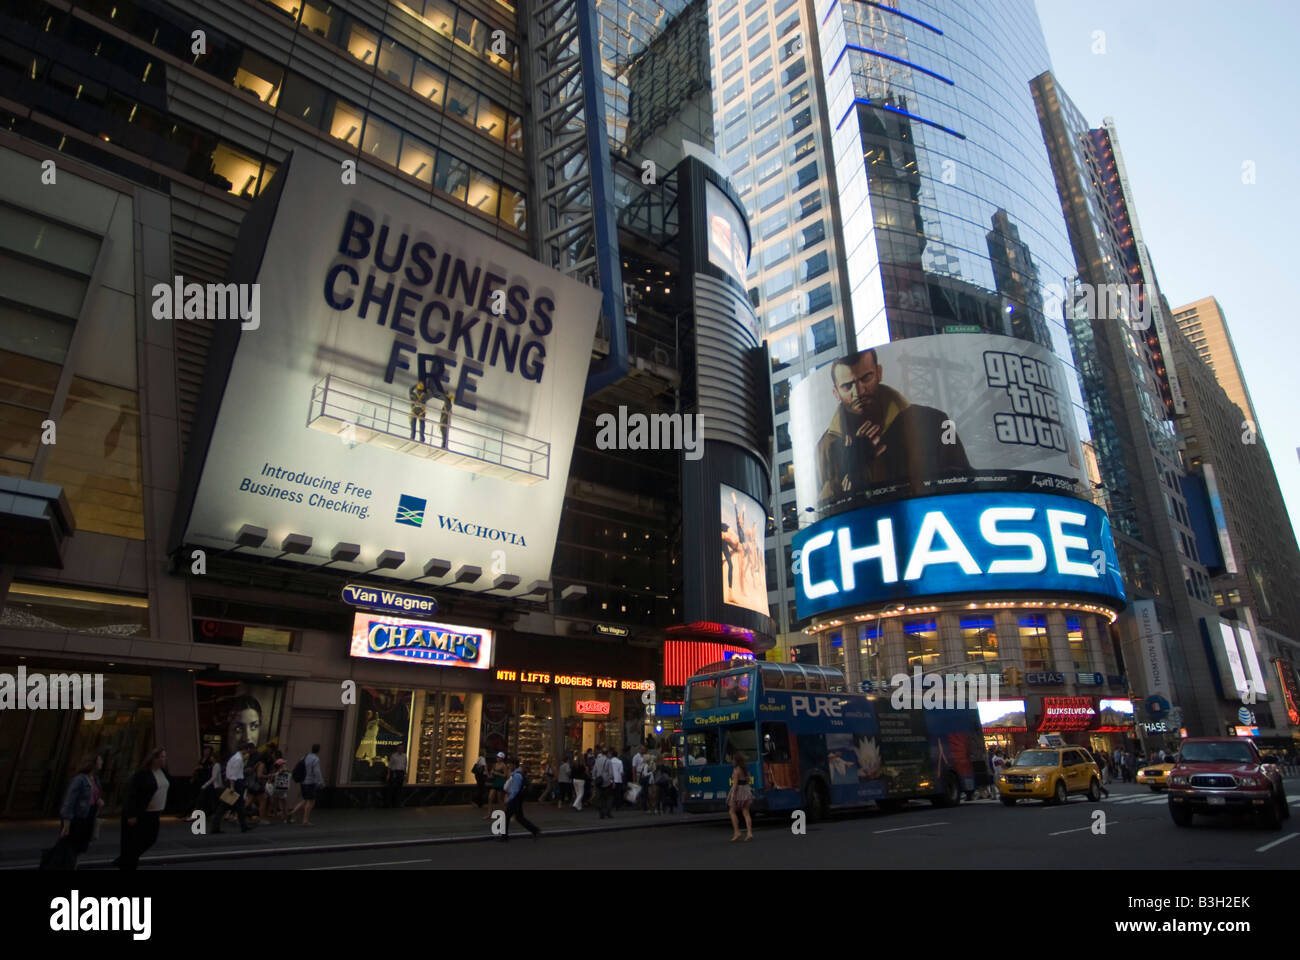 an advertisement for wachovia bank and jp morgan chase bank in times